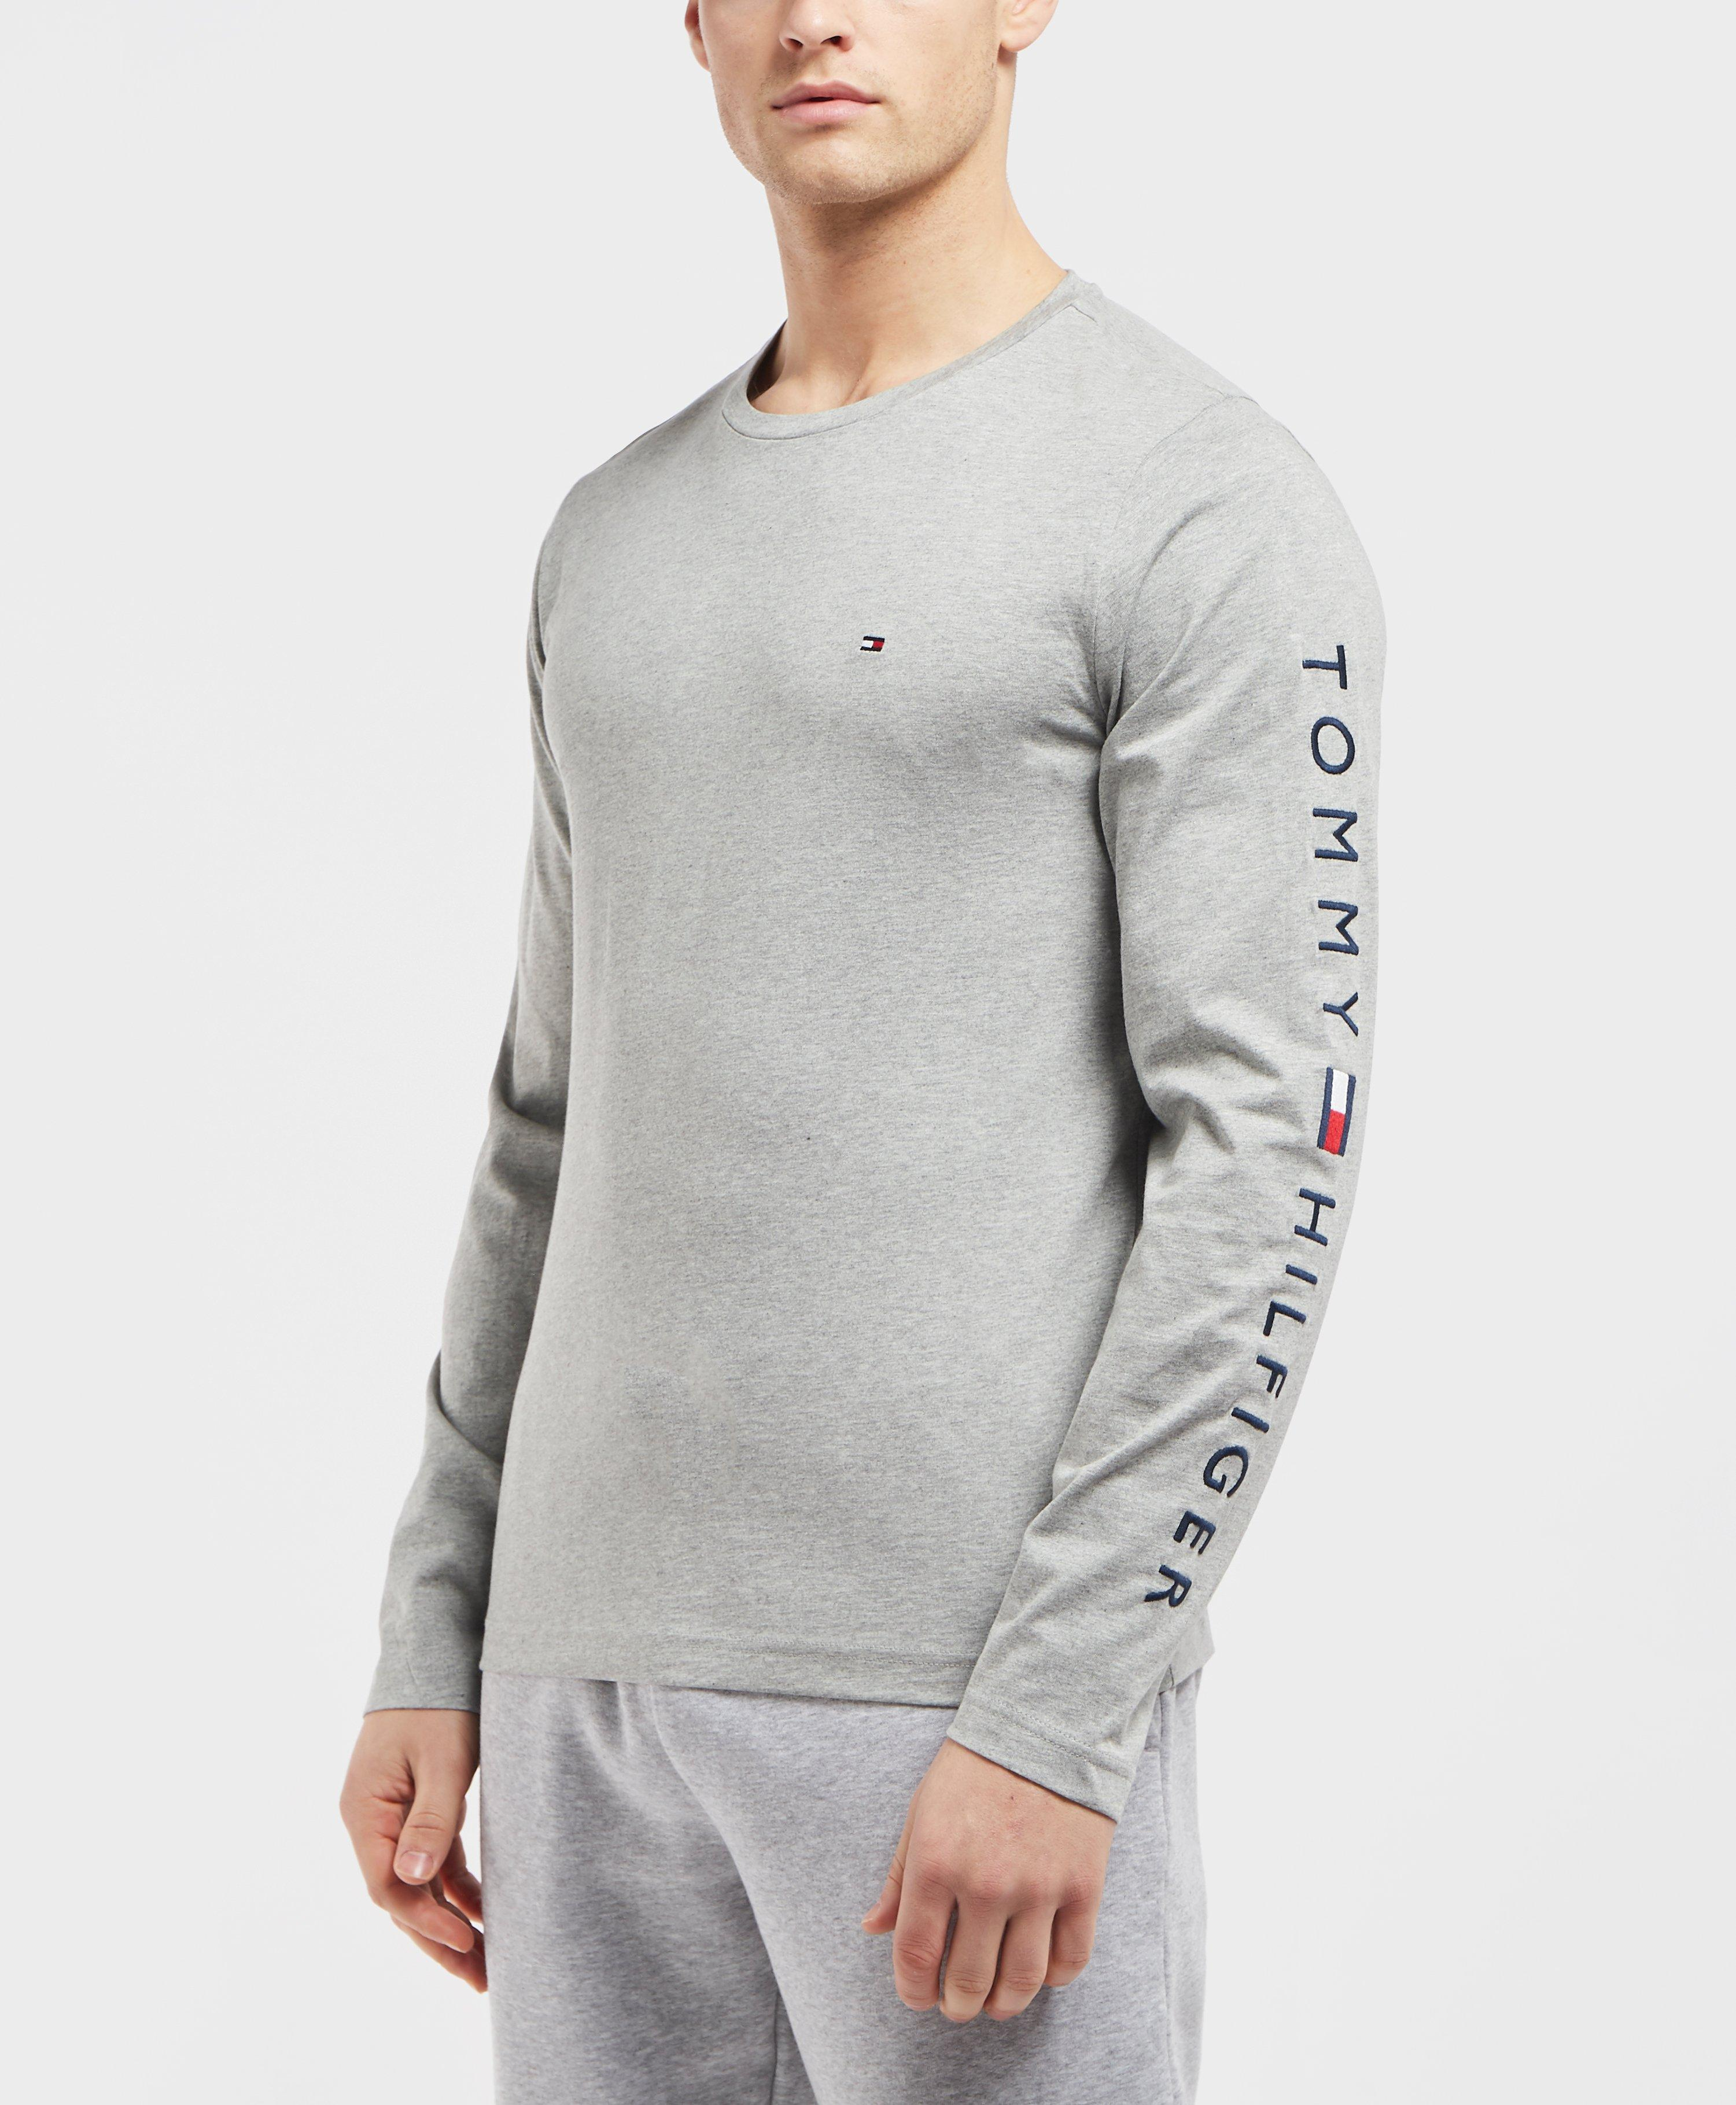 99a161b5 Tommy Hilfiger Long Sleeve Arm Logo T-shirt in Gray for Men - Lyst